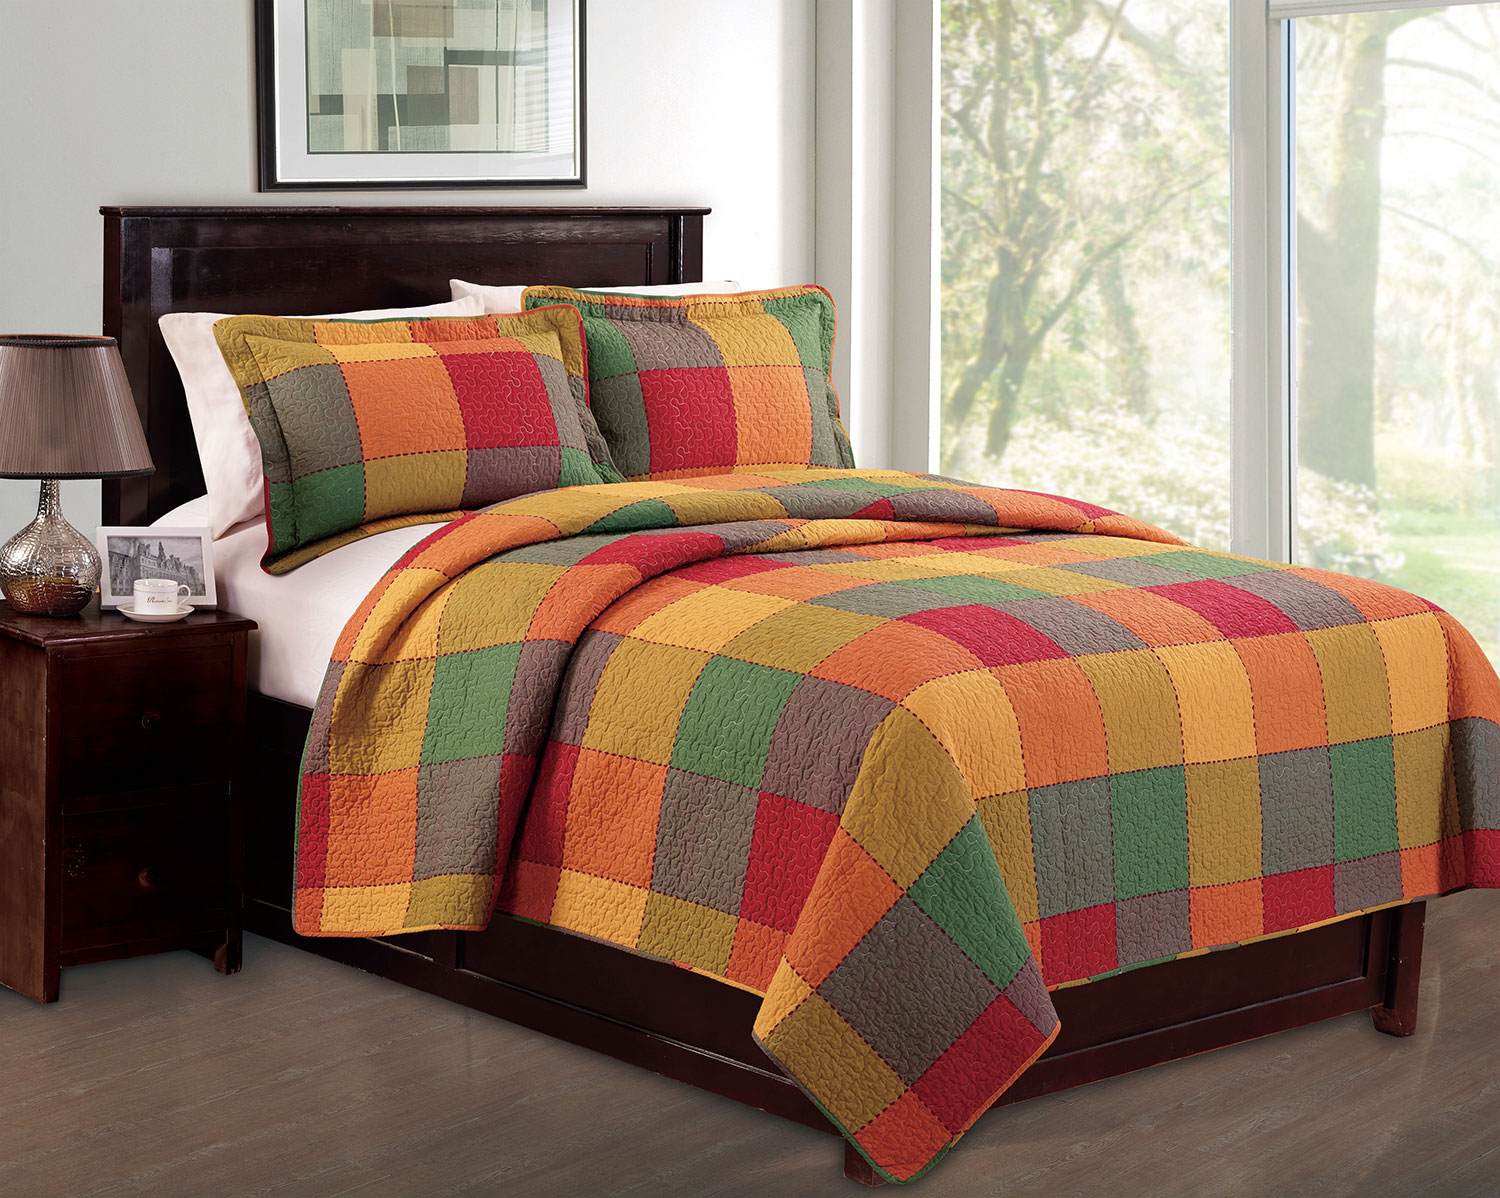 Brighton By Cotton On Quilts Beddingsuperstore Com